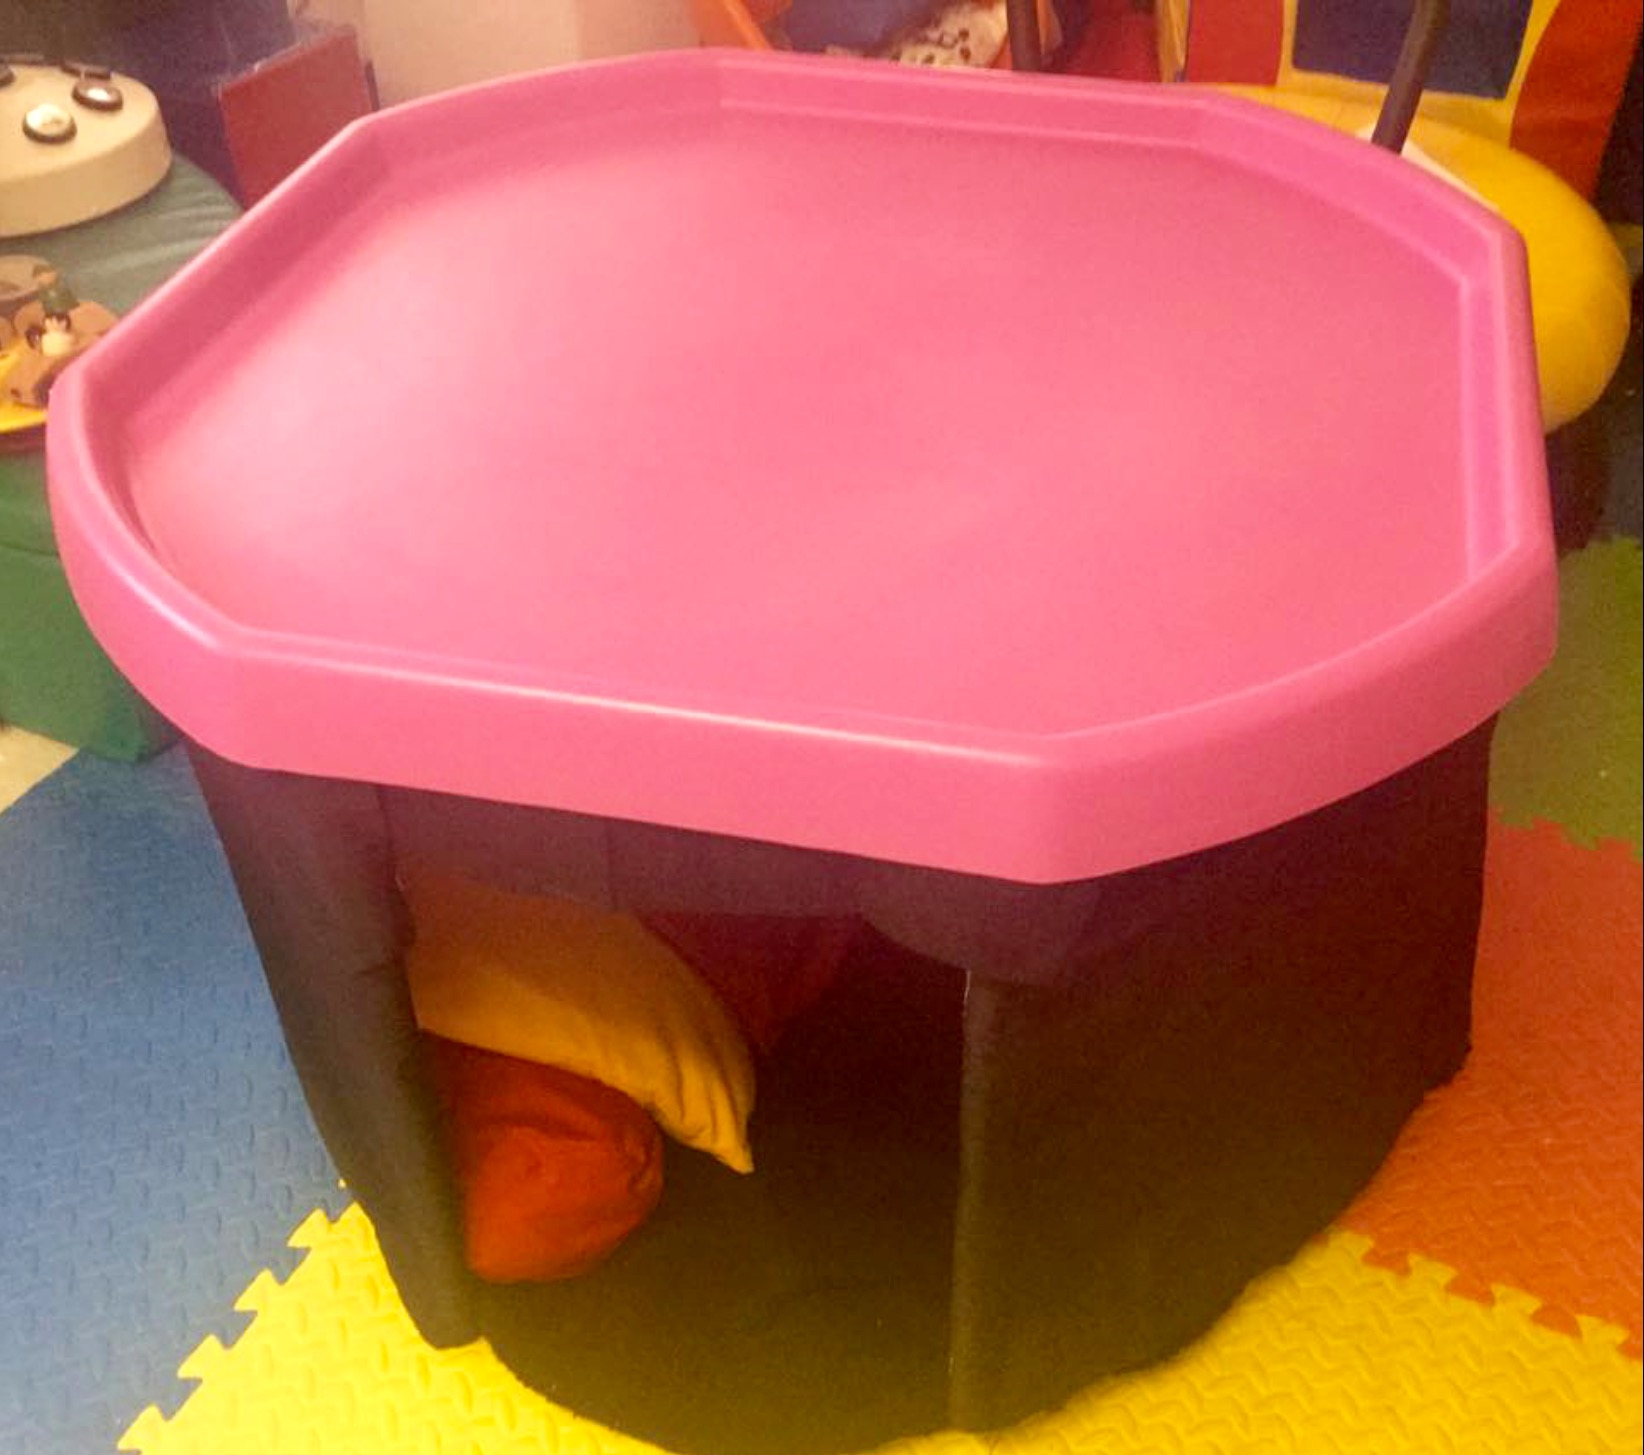 Ebay Tuff Tray And Stand Review Special Needs And